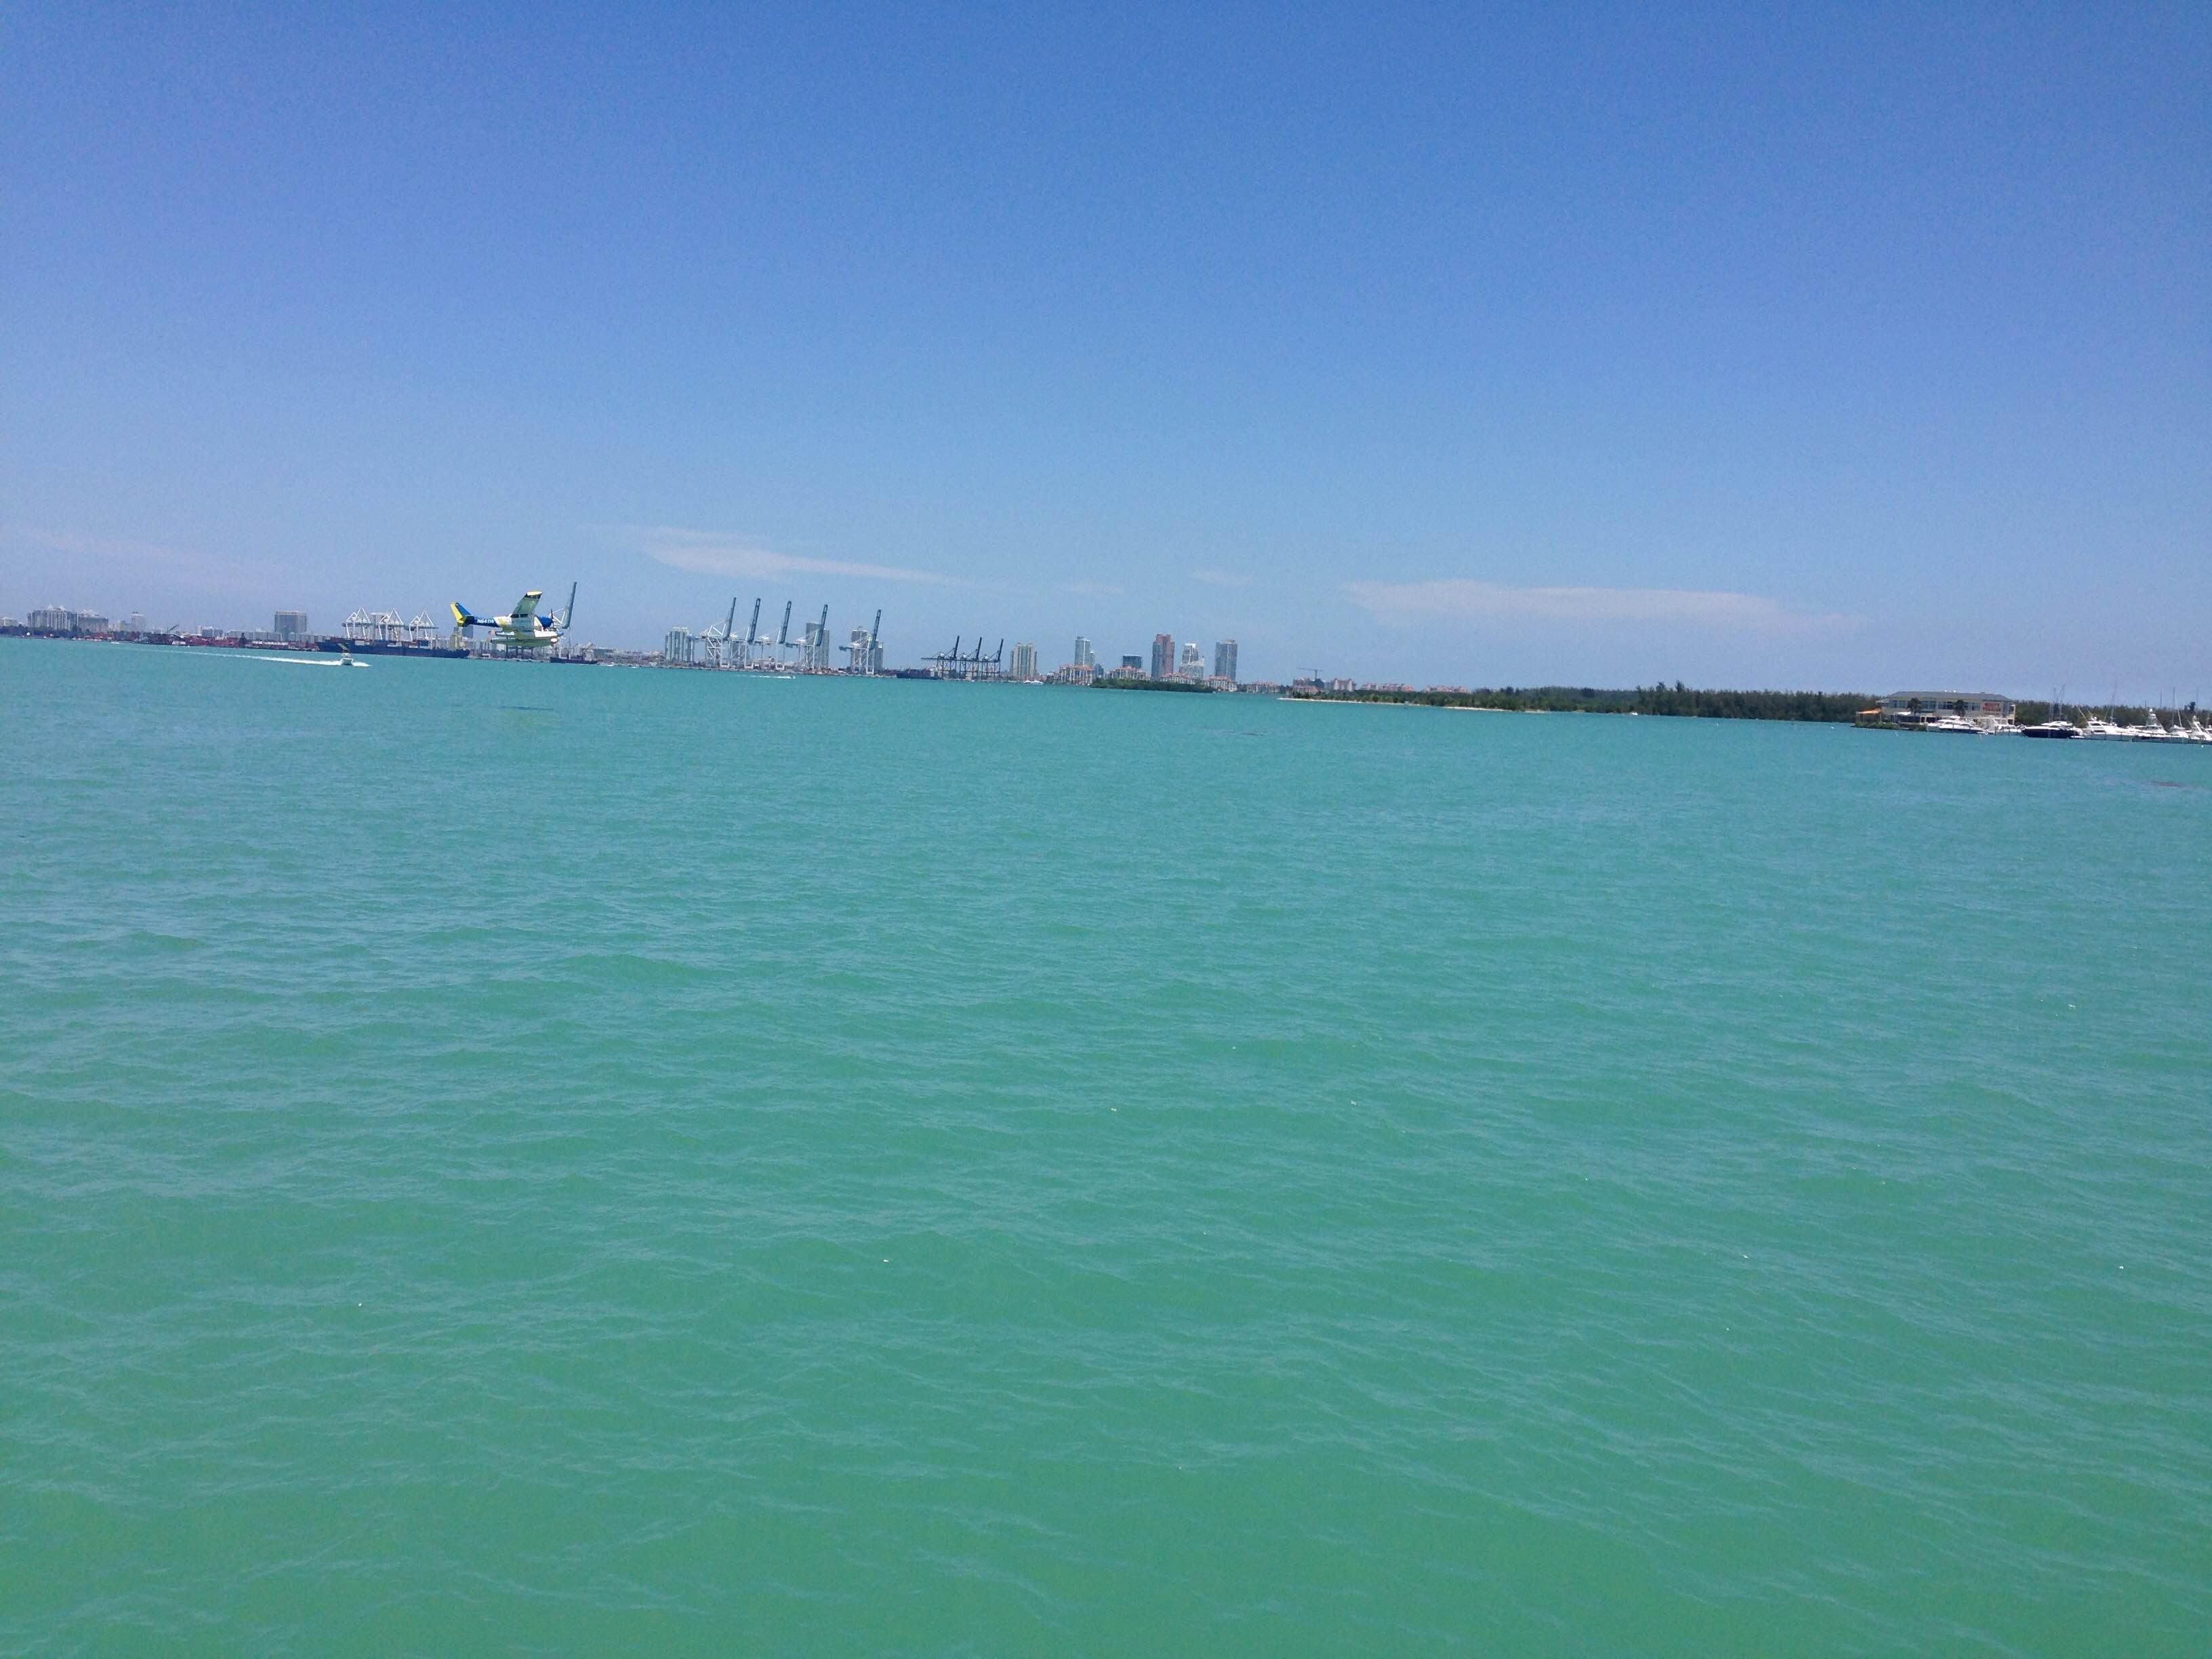 Vacation in Key Biscayne from Miami